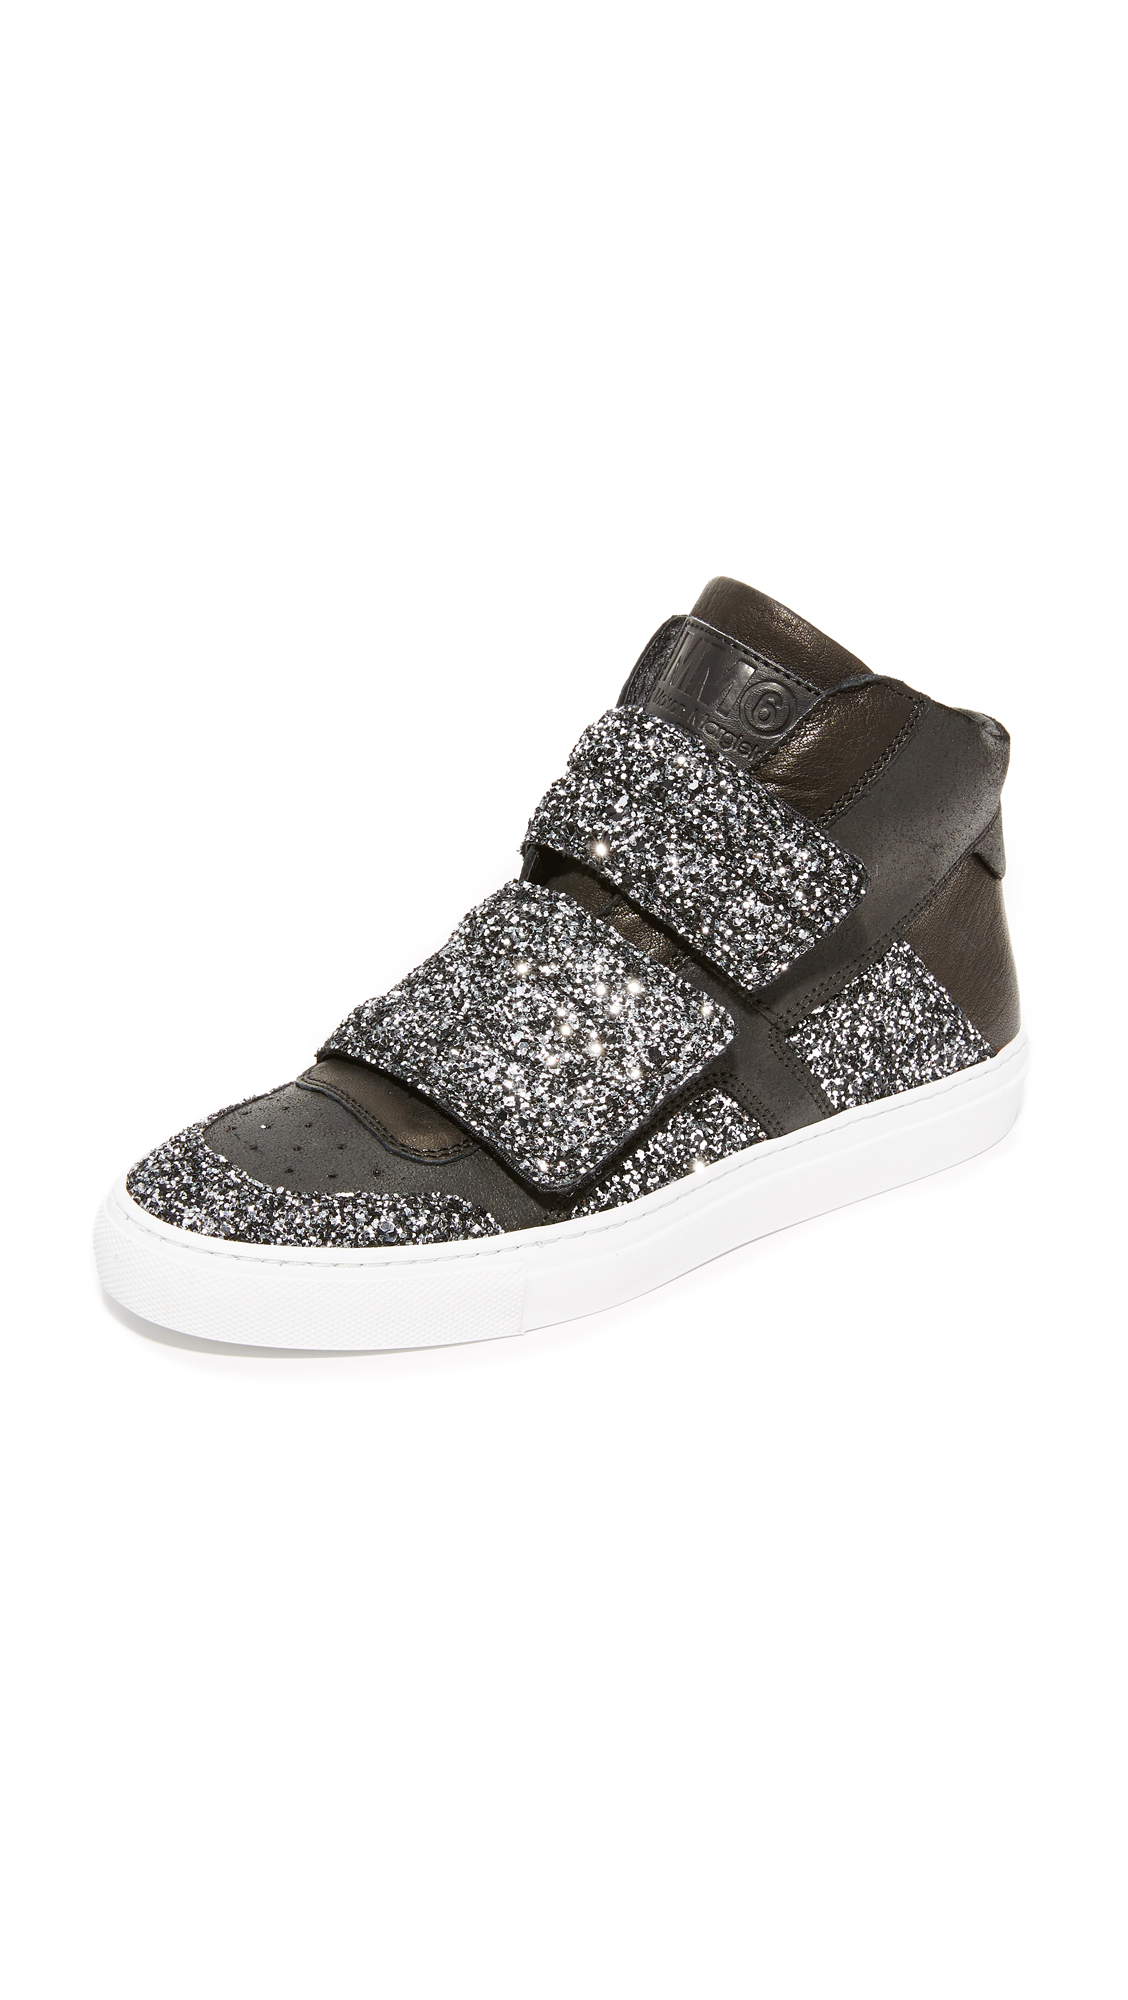 Photo of Mm6 Velcro Glitter High Top Sneakers Black-Silver-Black-Silver - MM6 online